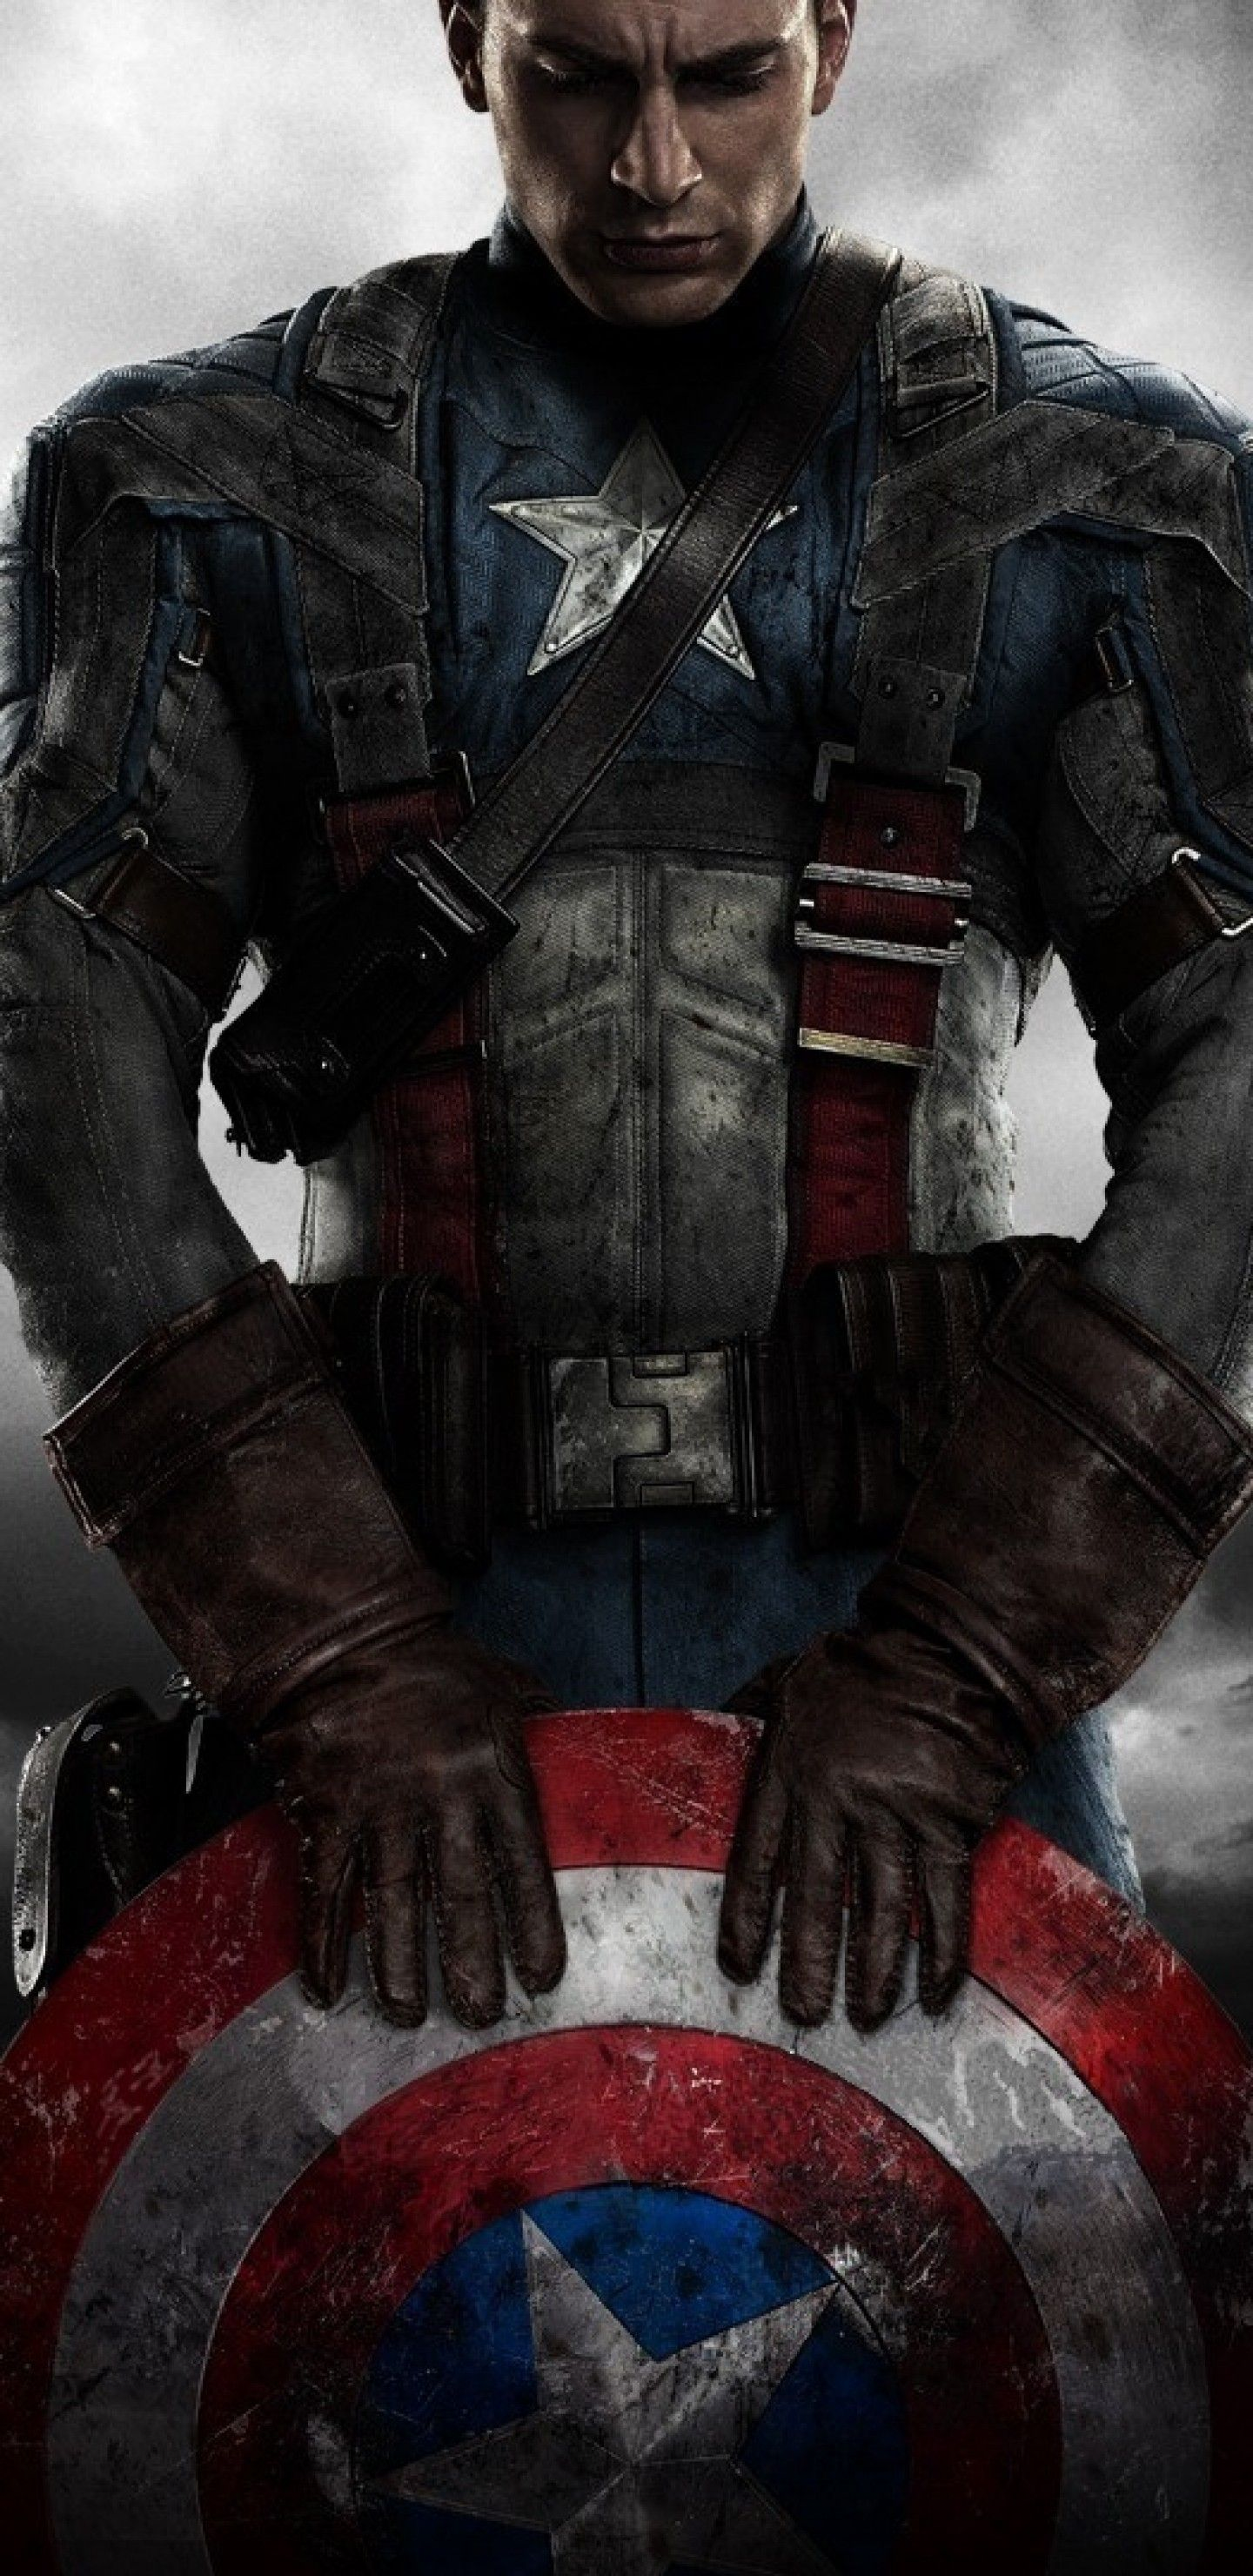 Download 1440x2960 Captain America: The First Avenger, Chris Evans